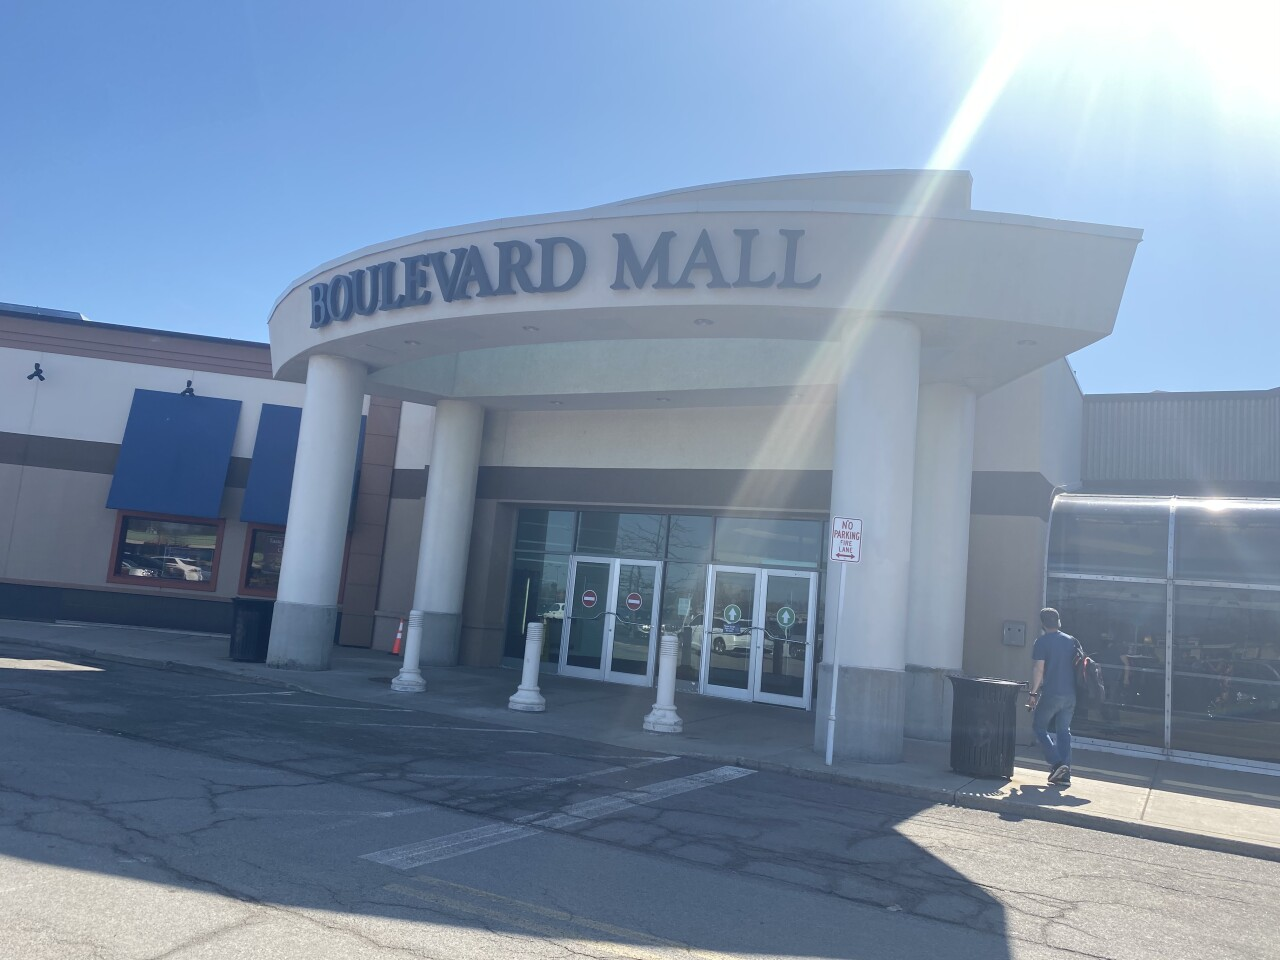 New business hopes to bring fresh faces to the Boulevard Mall